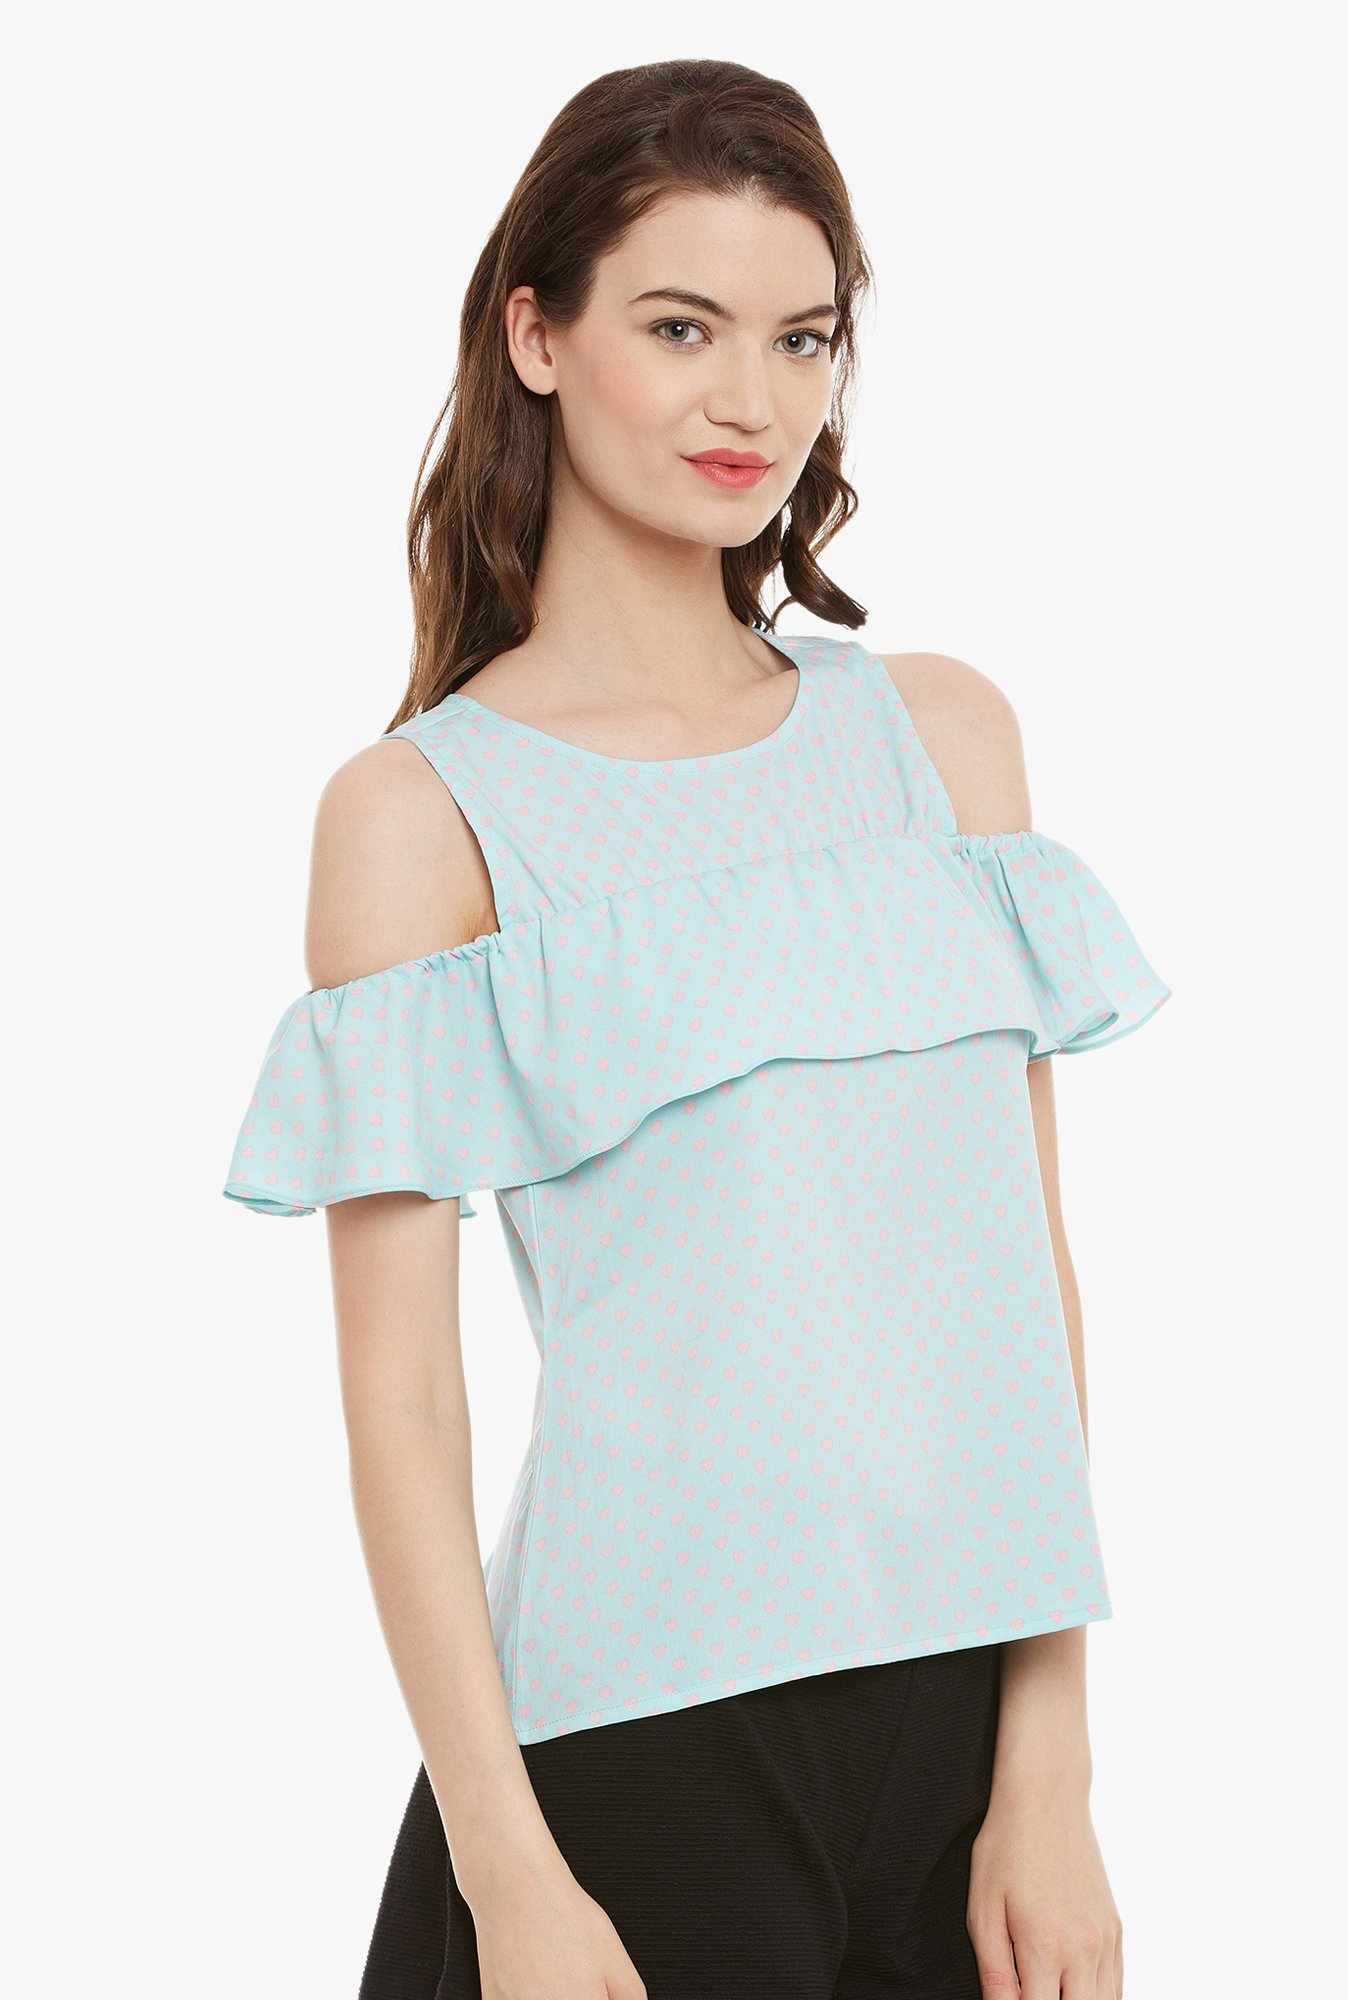 Athena Blue Printed Top